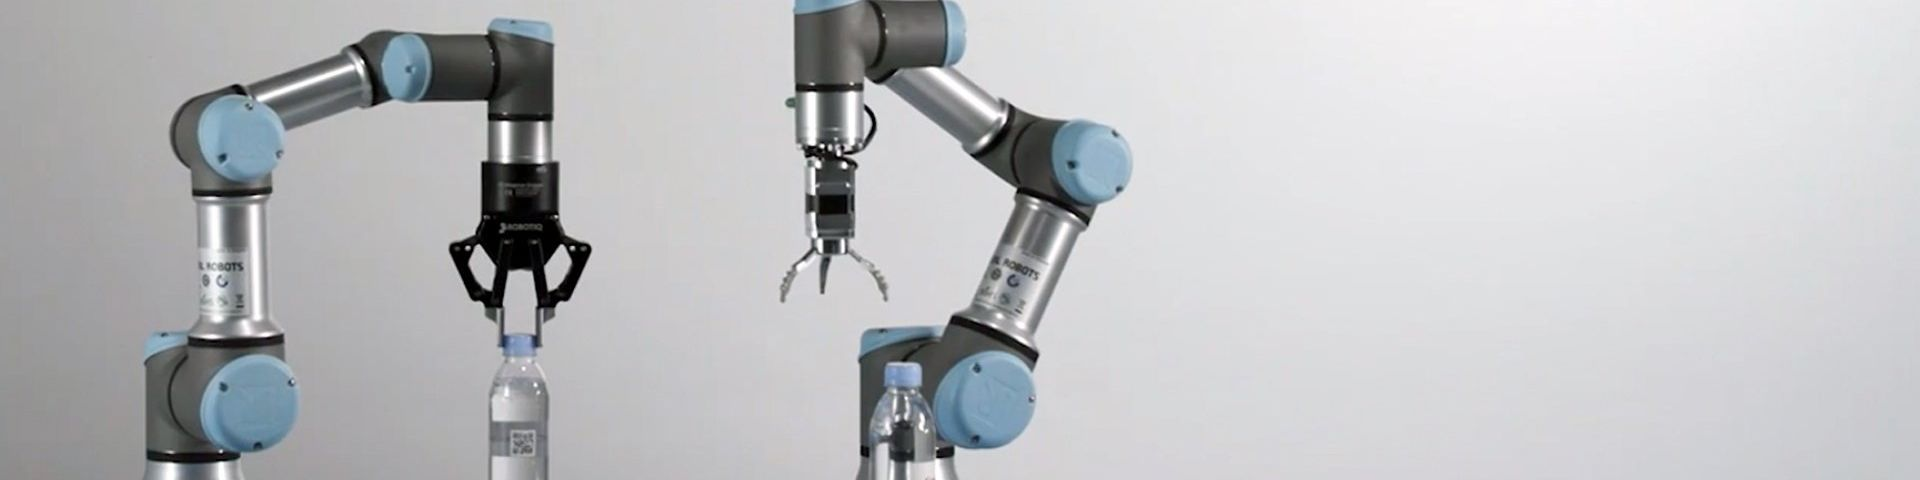 A Universal Robots cobot in action